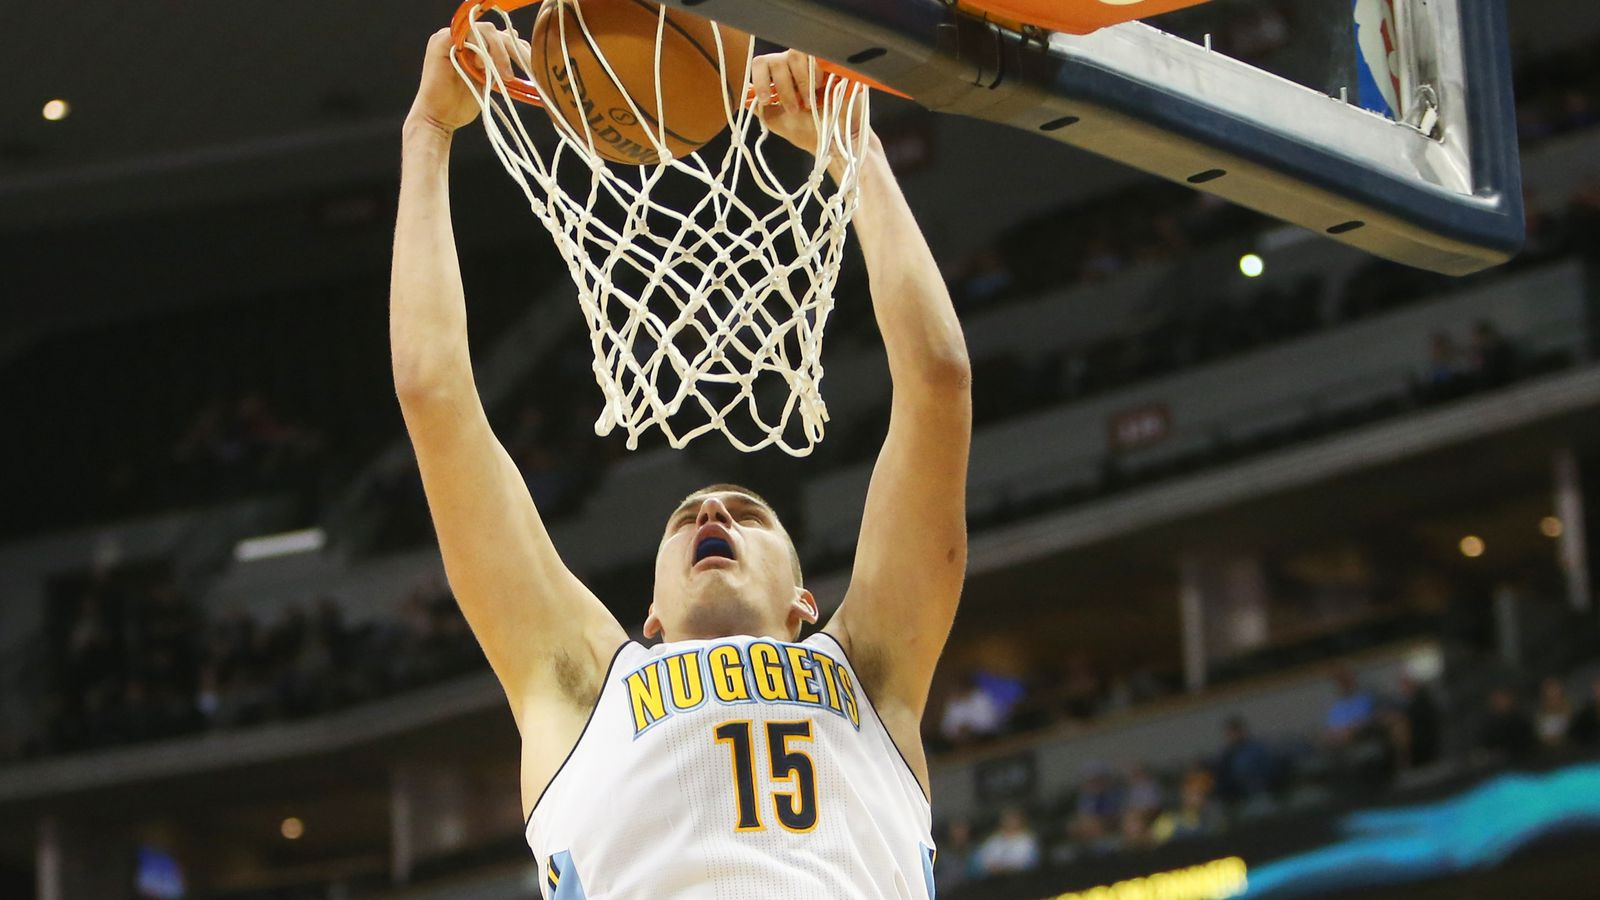 Roundtable Denver Nuggets Losing Streak Trades And Jusuf